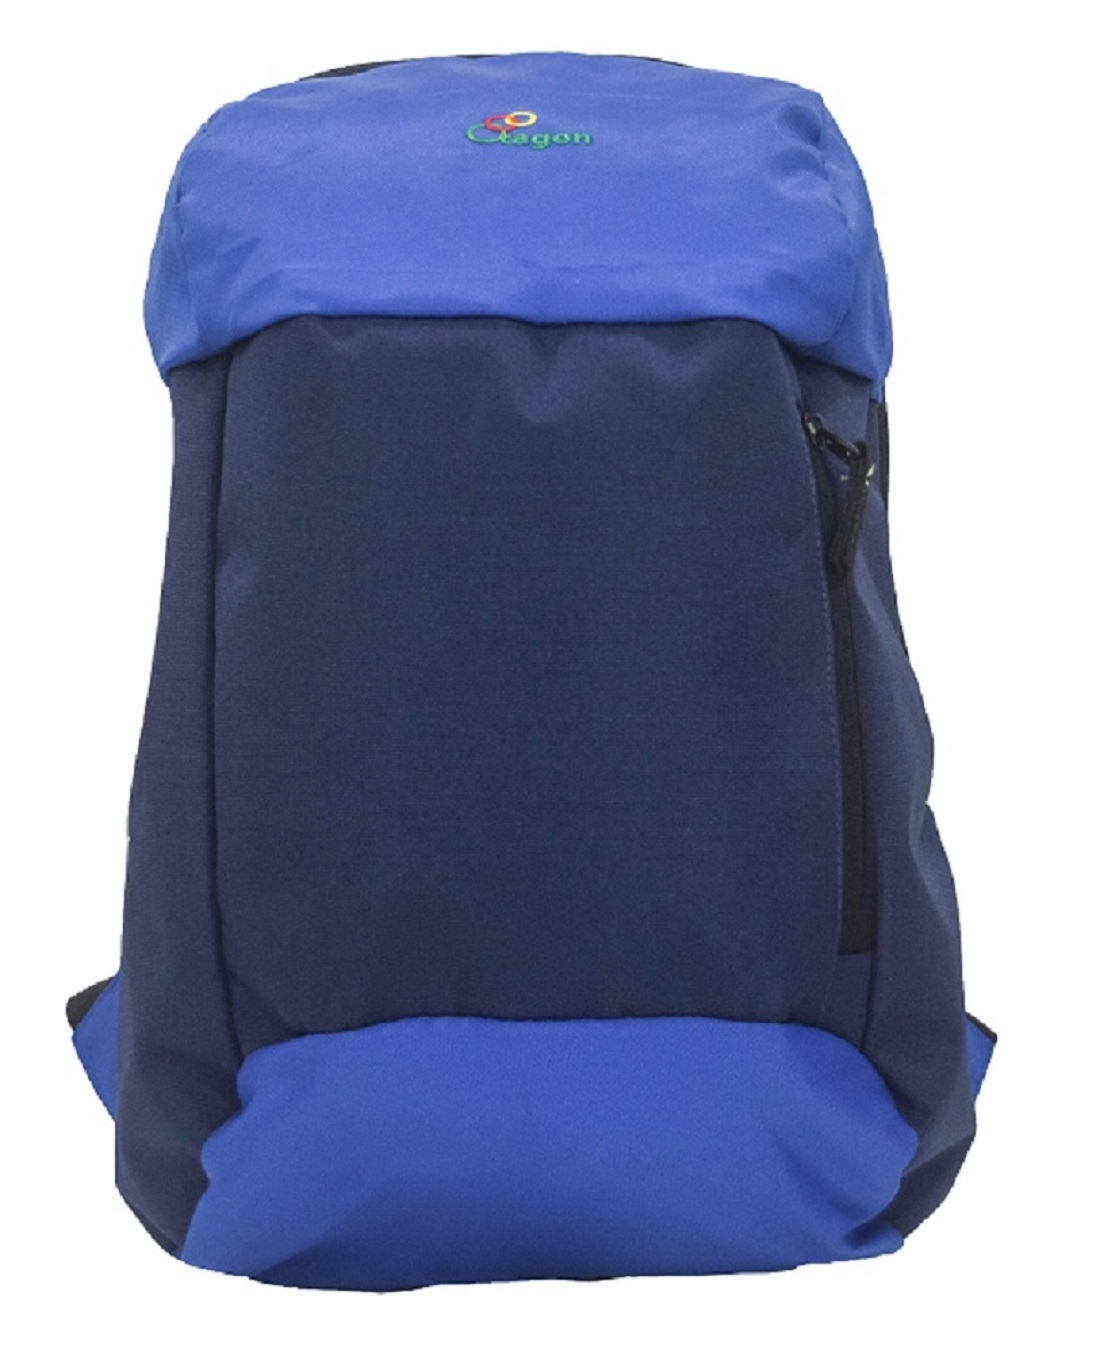 Hiking Picnic College School Travel Compact Light Weight Premium Quality Back Pack 15 Ltr